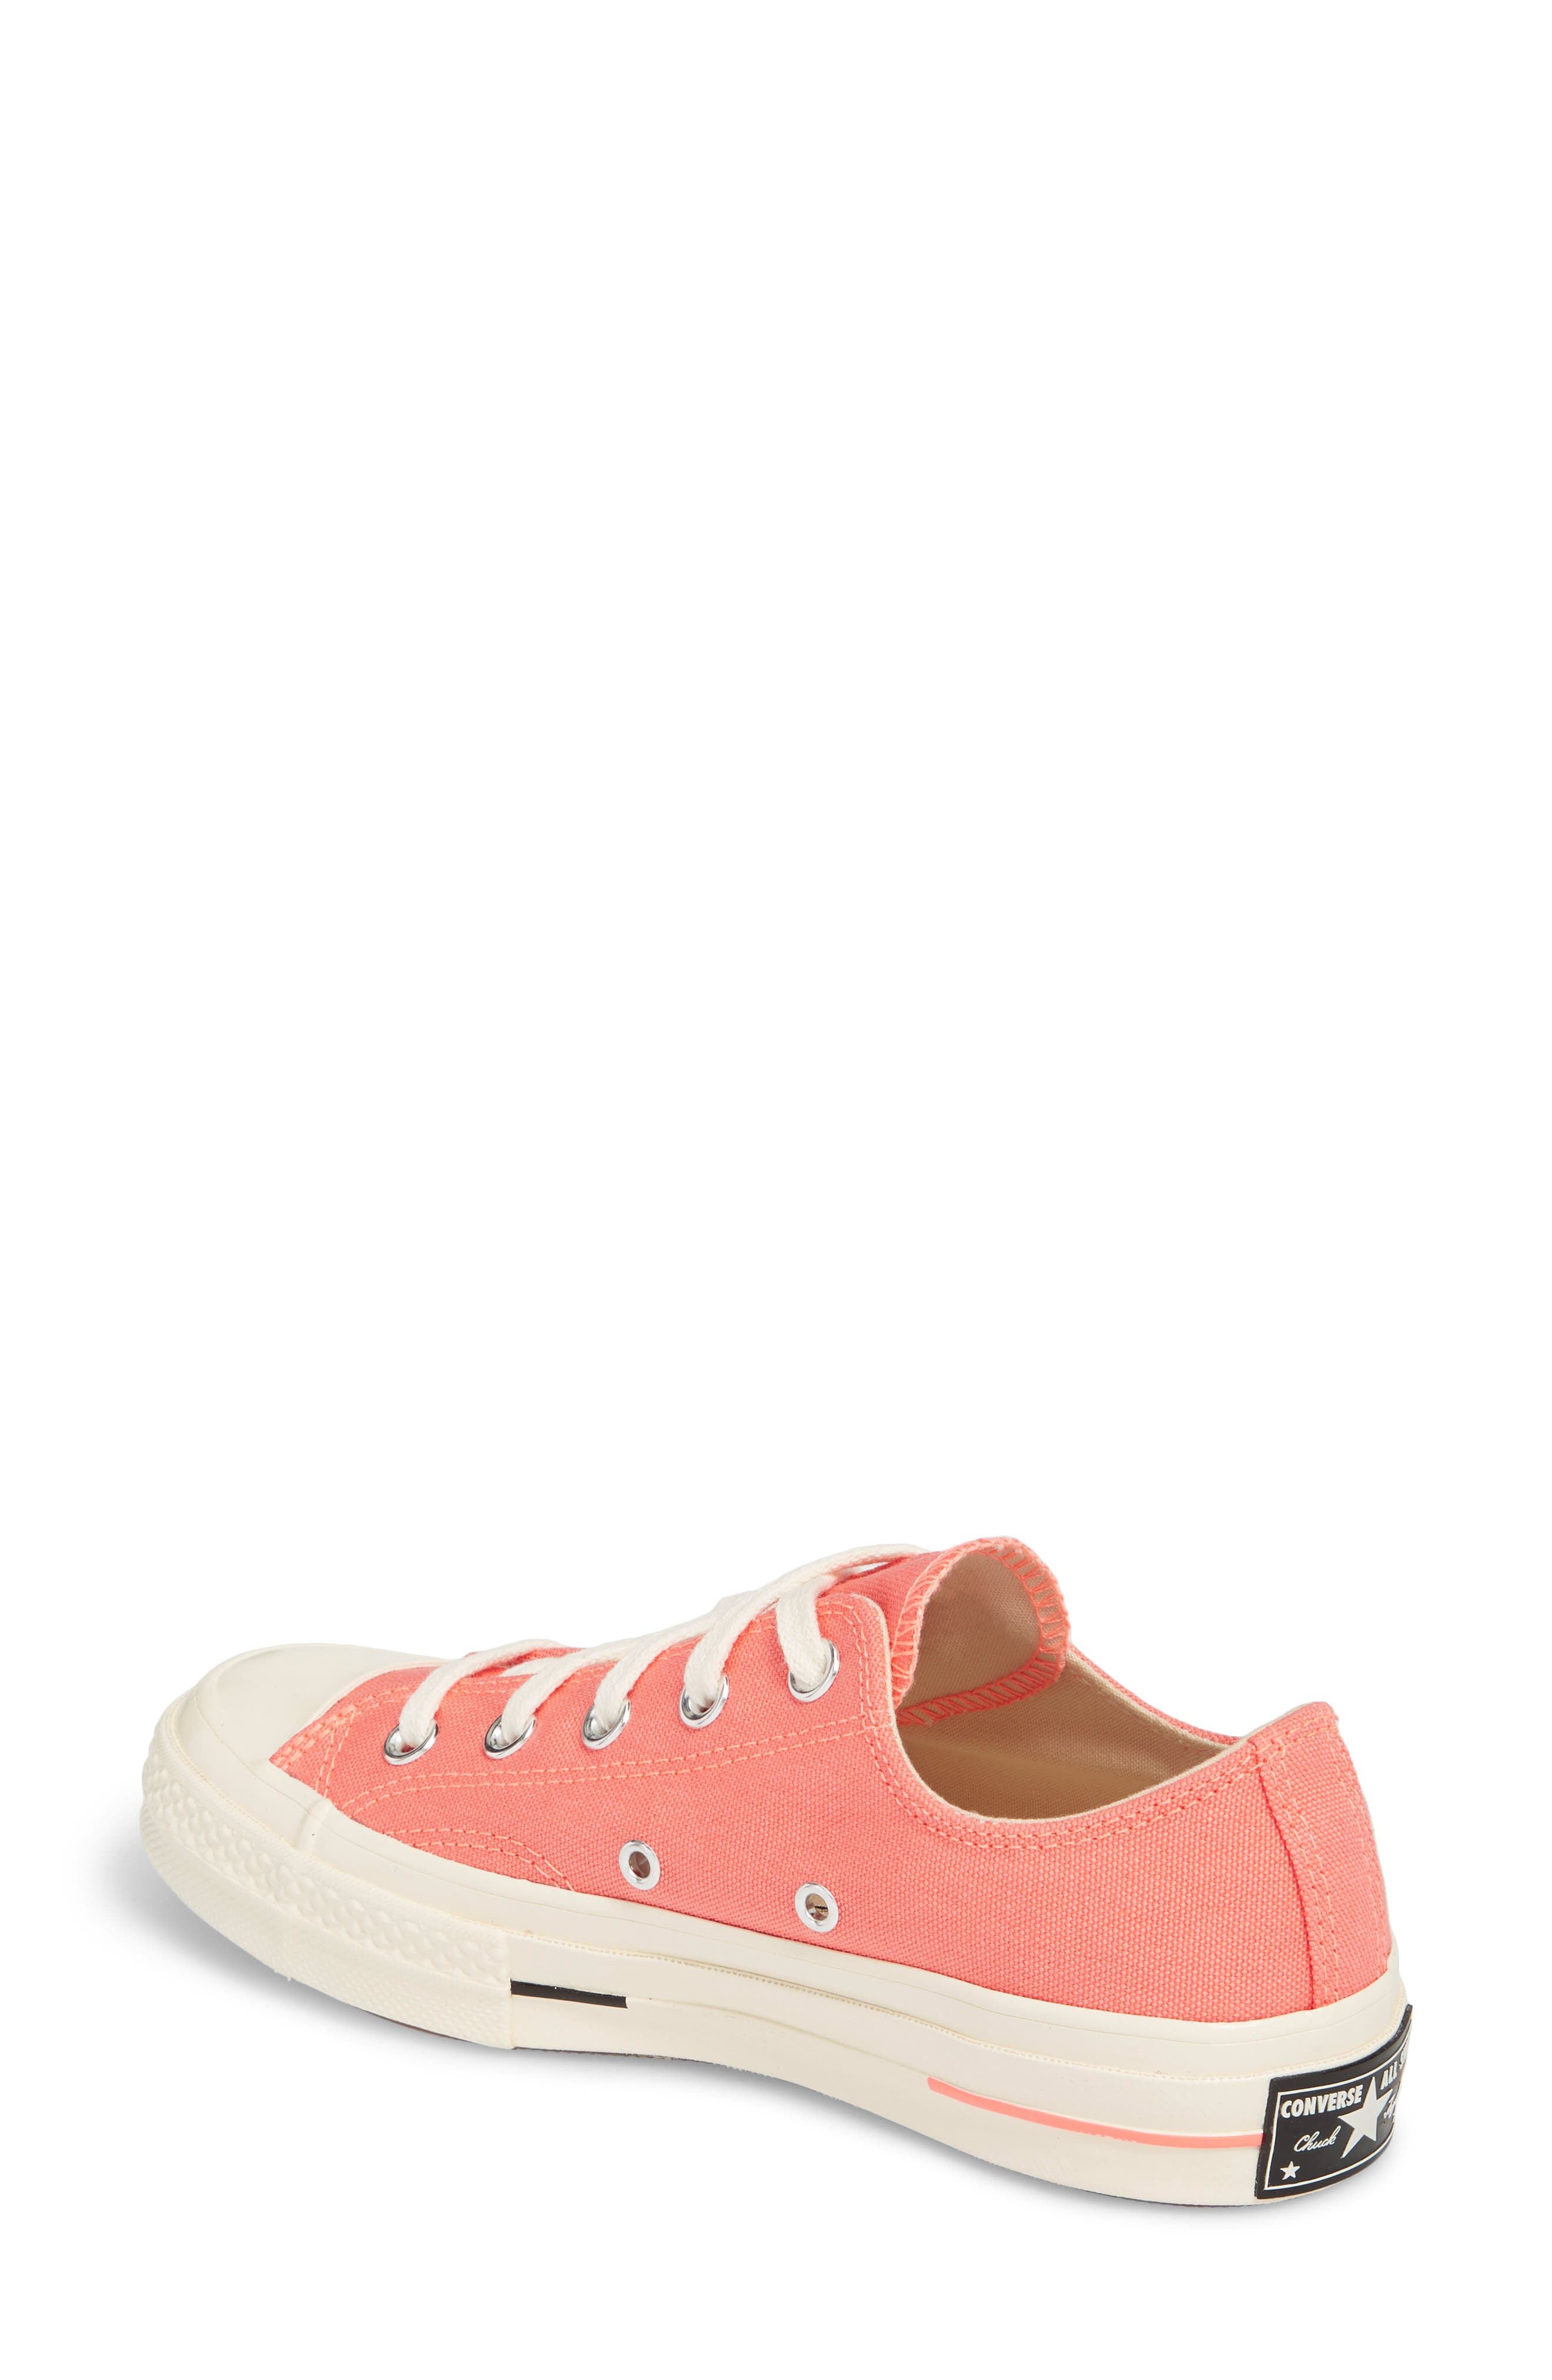 Chuck Taylor<sup>®</sup> All Star<sup>®</sup> '70s Brights Low Top Sneaker,                             Alternate thumbnail 2, color,                             CRIMSON PULSE